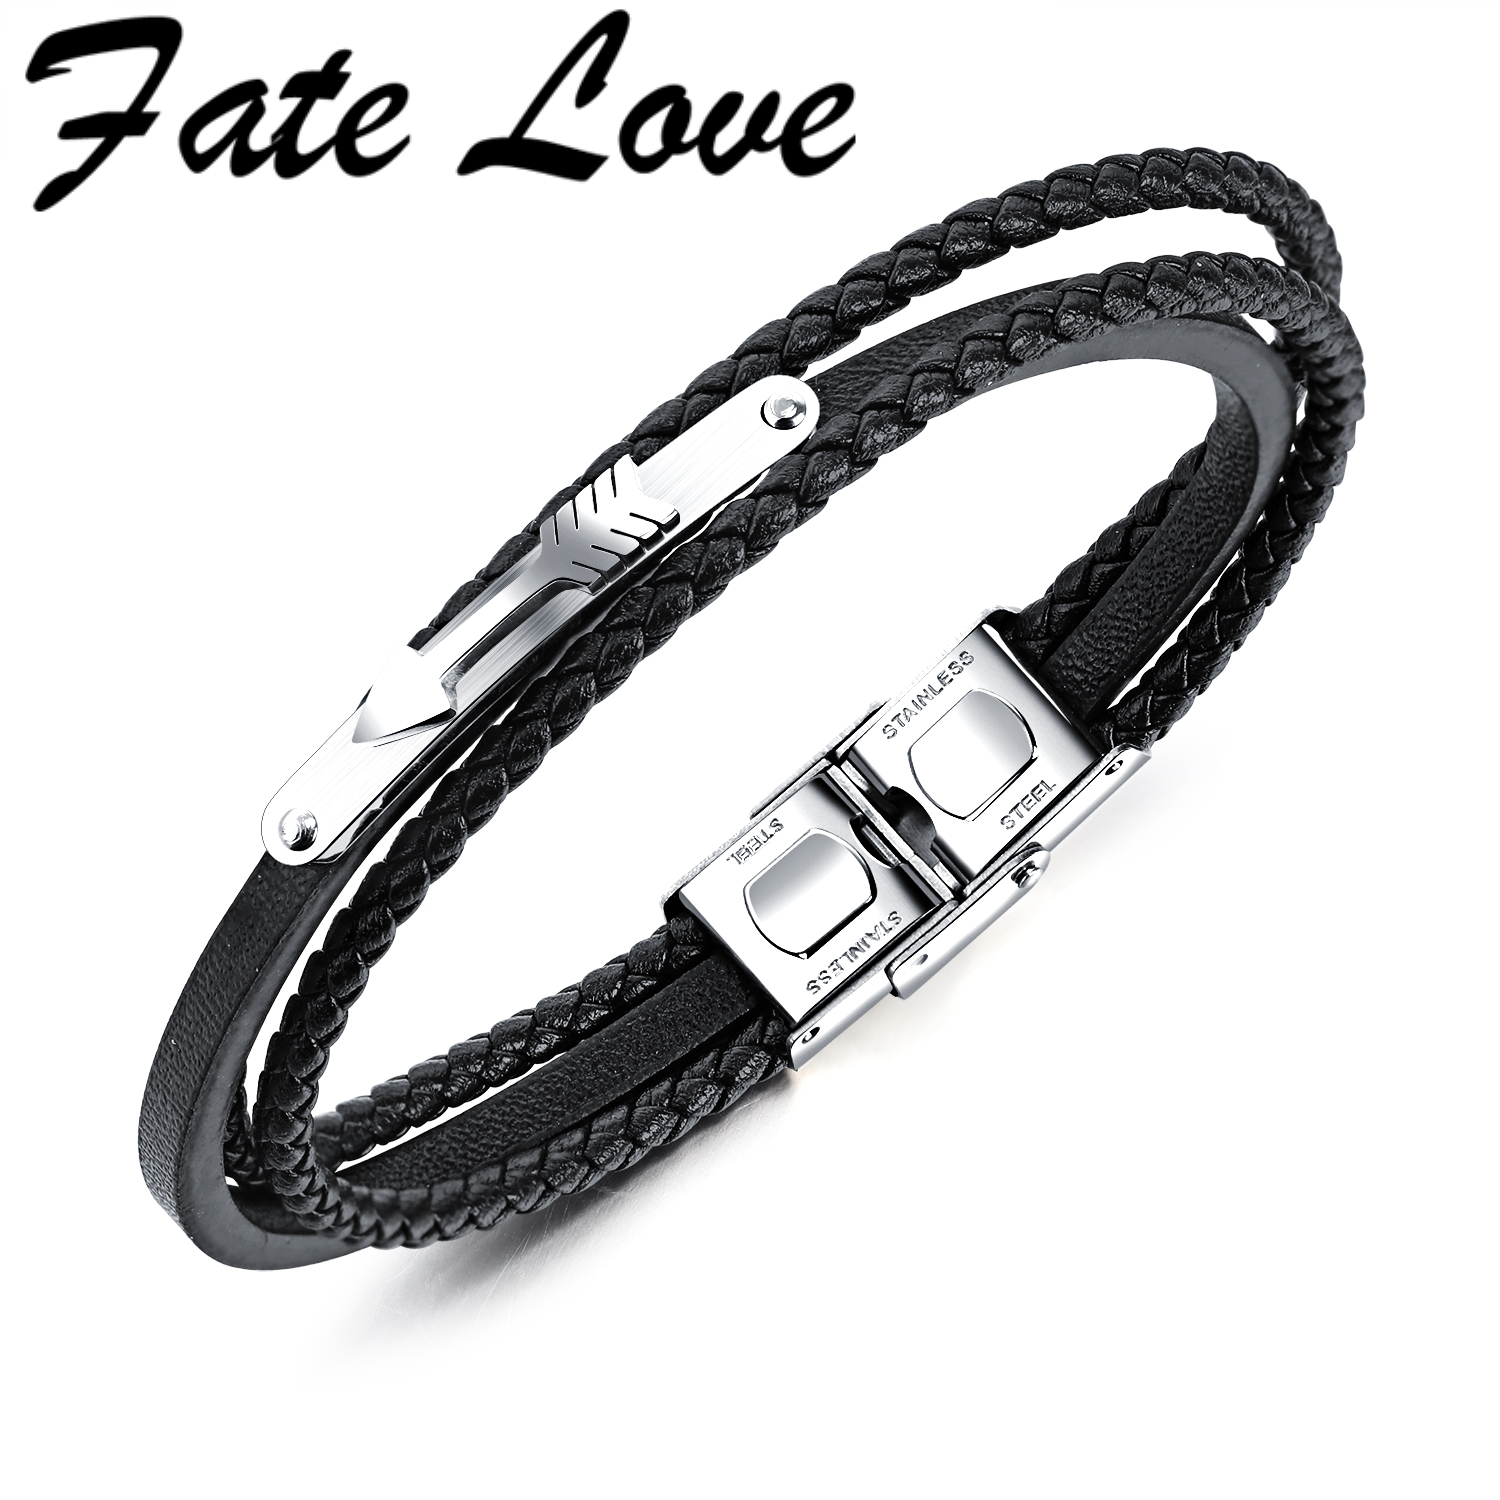 Fate Love Charm Leather Vintage Arrow Bracelet Multilayer Braided Wristband Bracelet Men ...